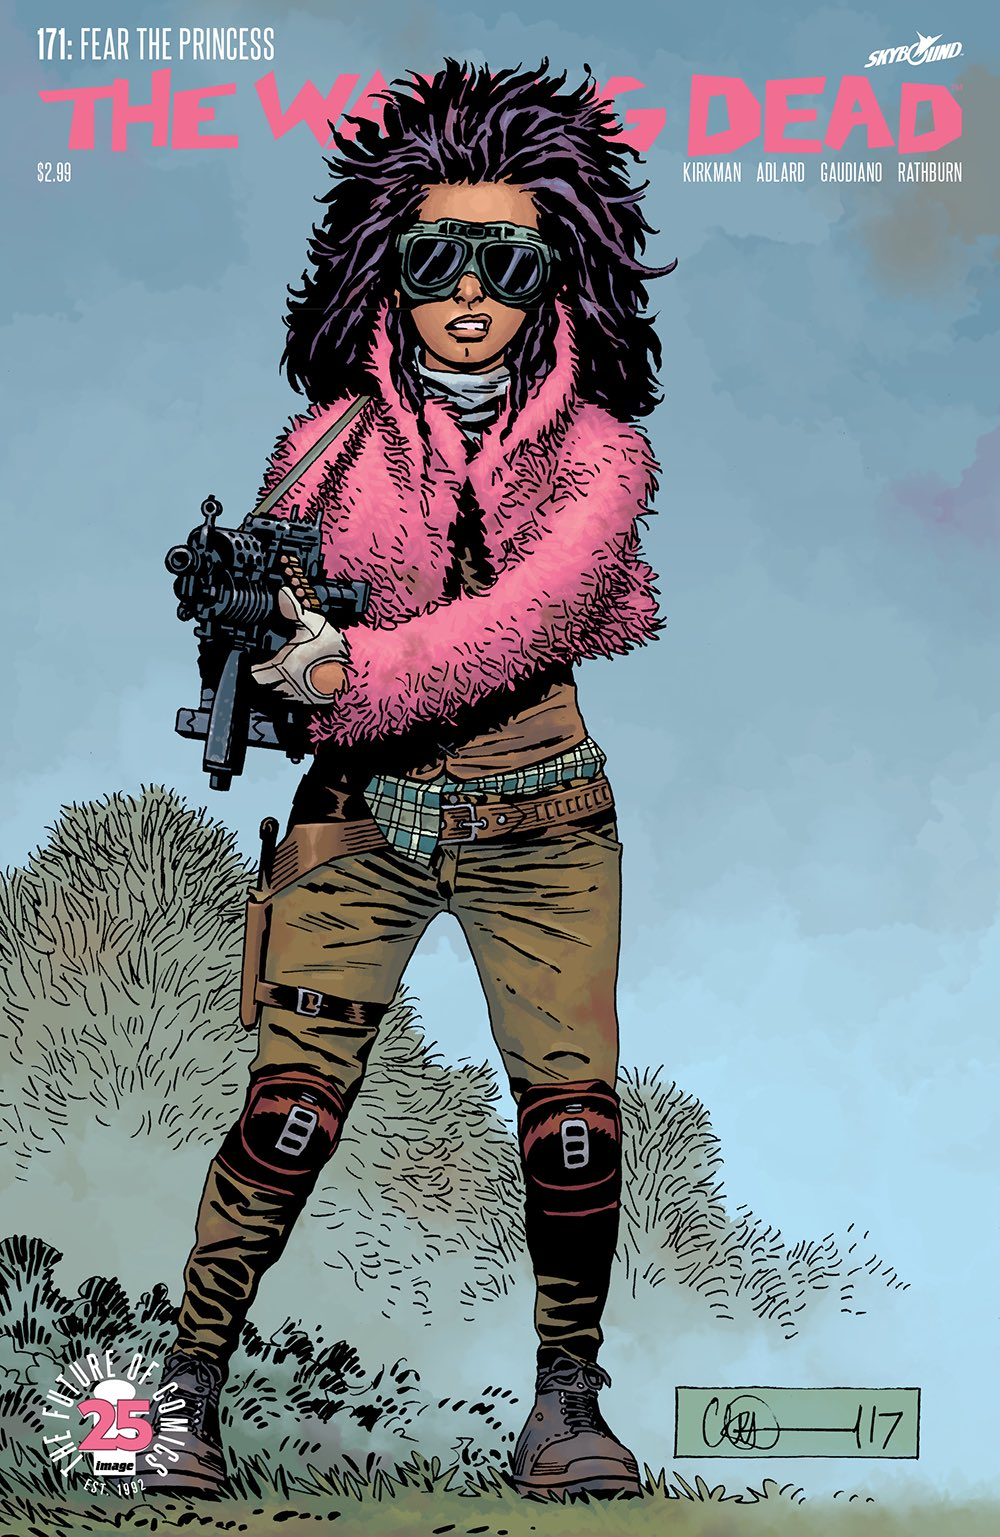 The Walking Dead #171 Review